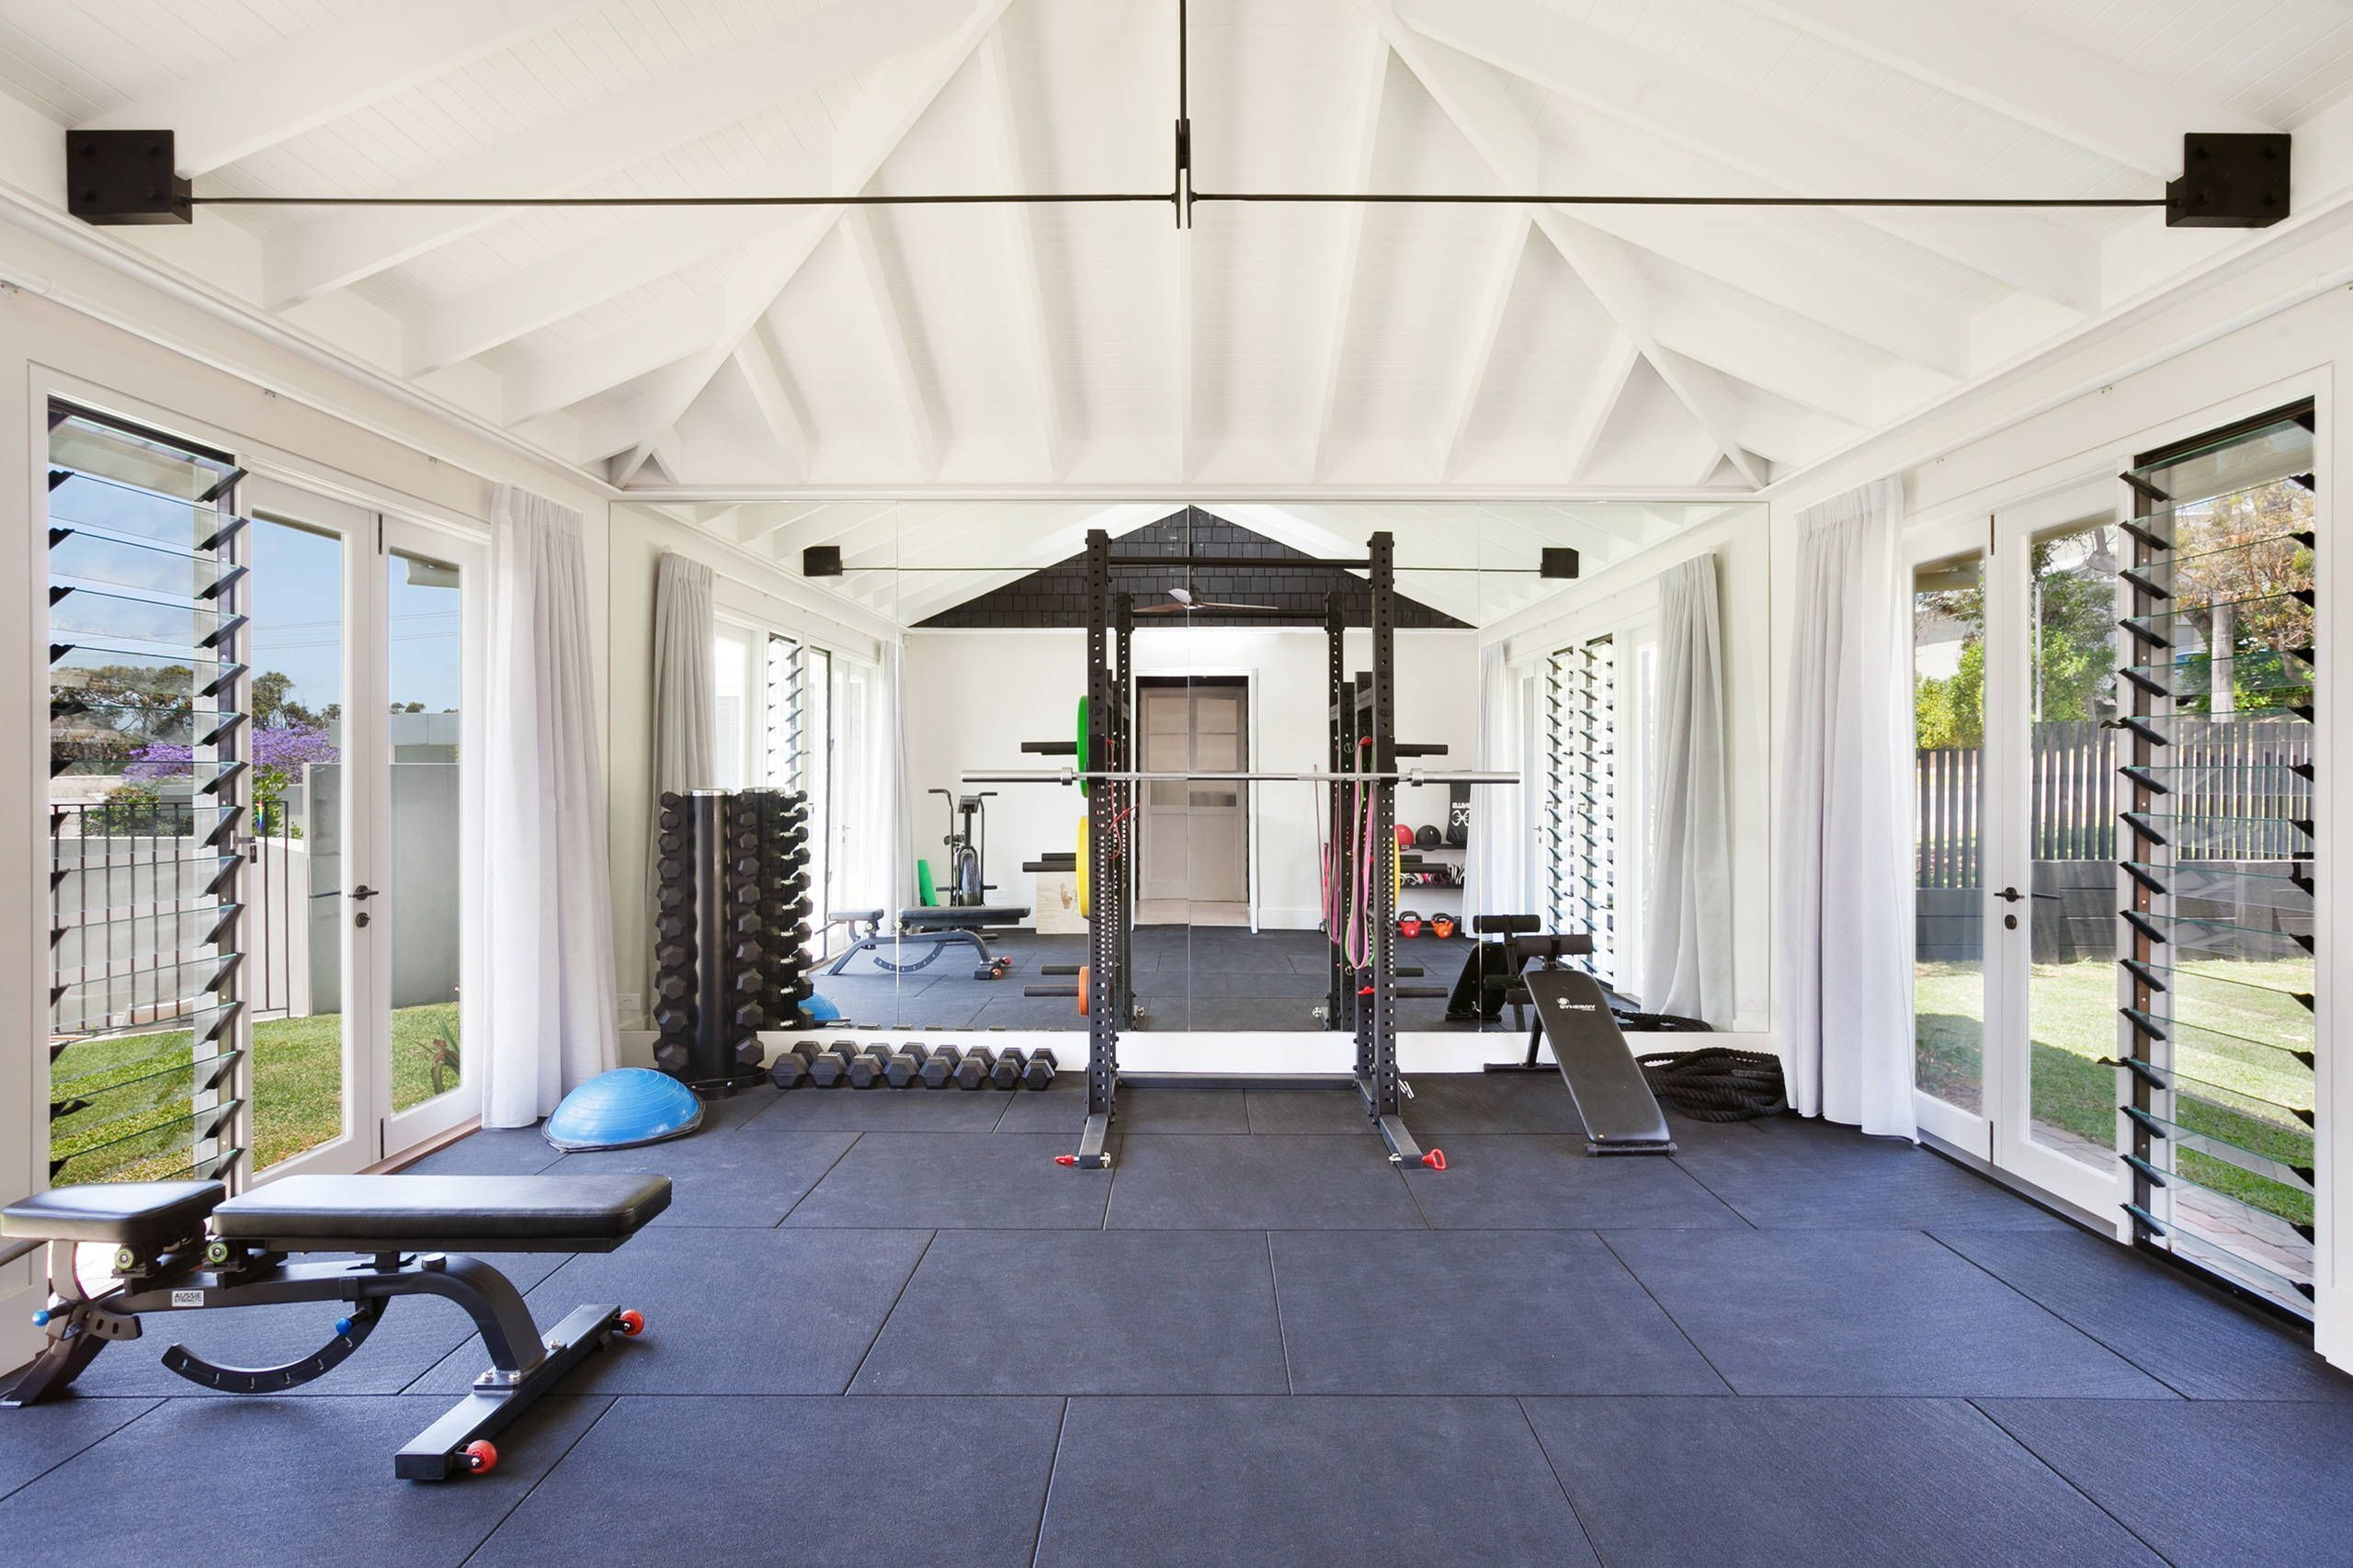 20 Amazing Home Gym Design Ideas #Home #Homedesign #Homedesignideas #Homedecorideas